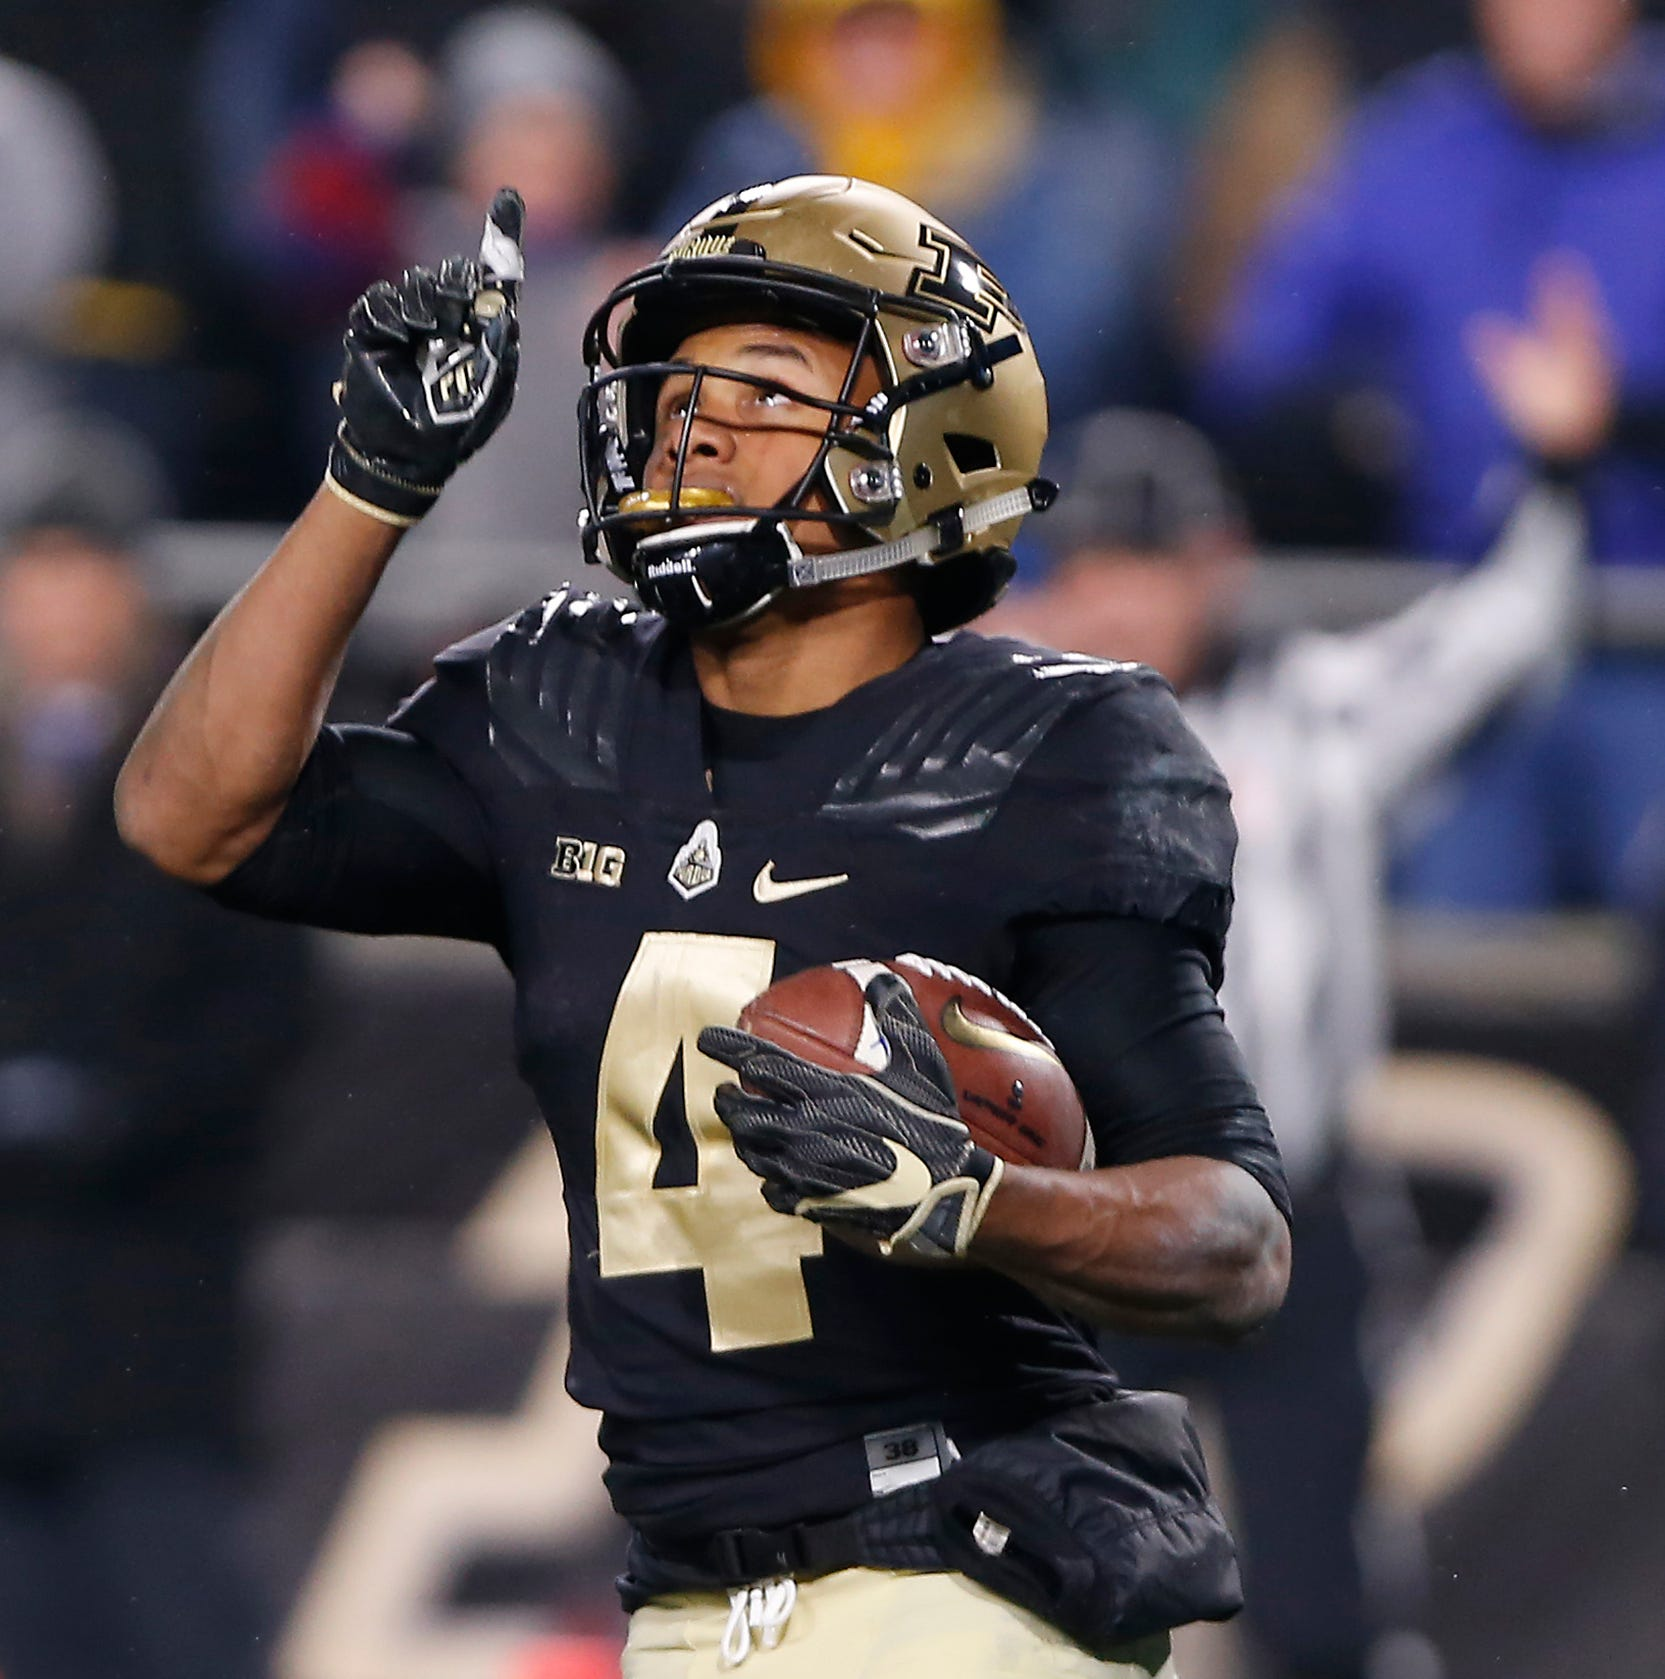 National honors continue for Purdue freshman Rondale Moore